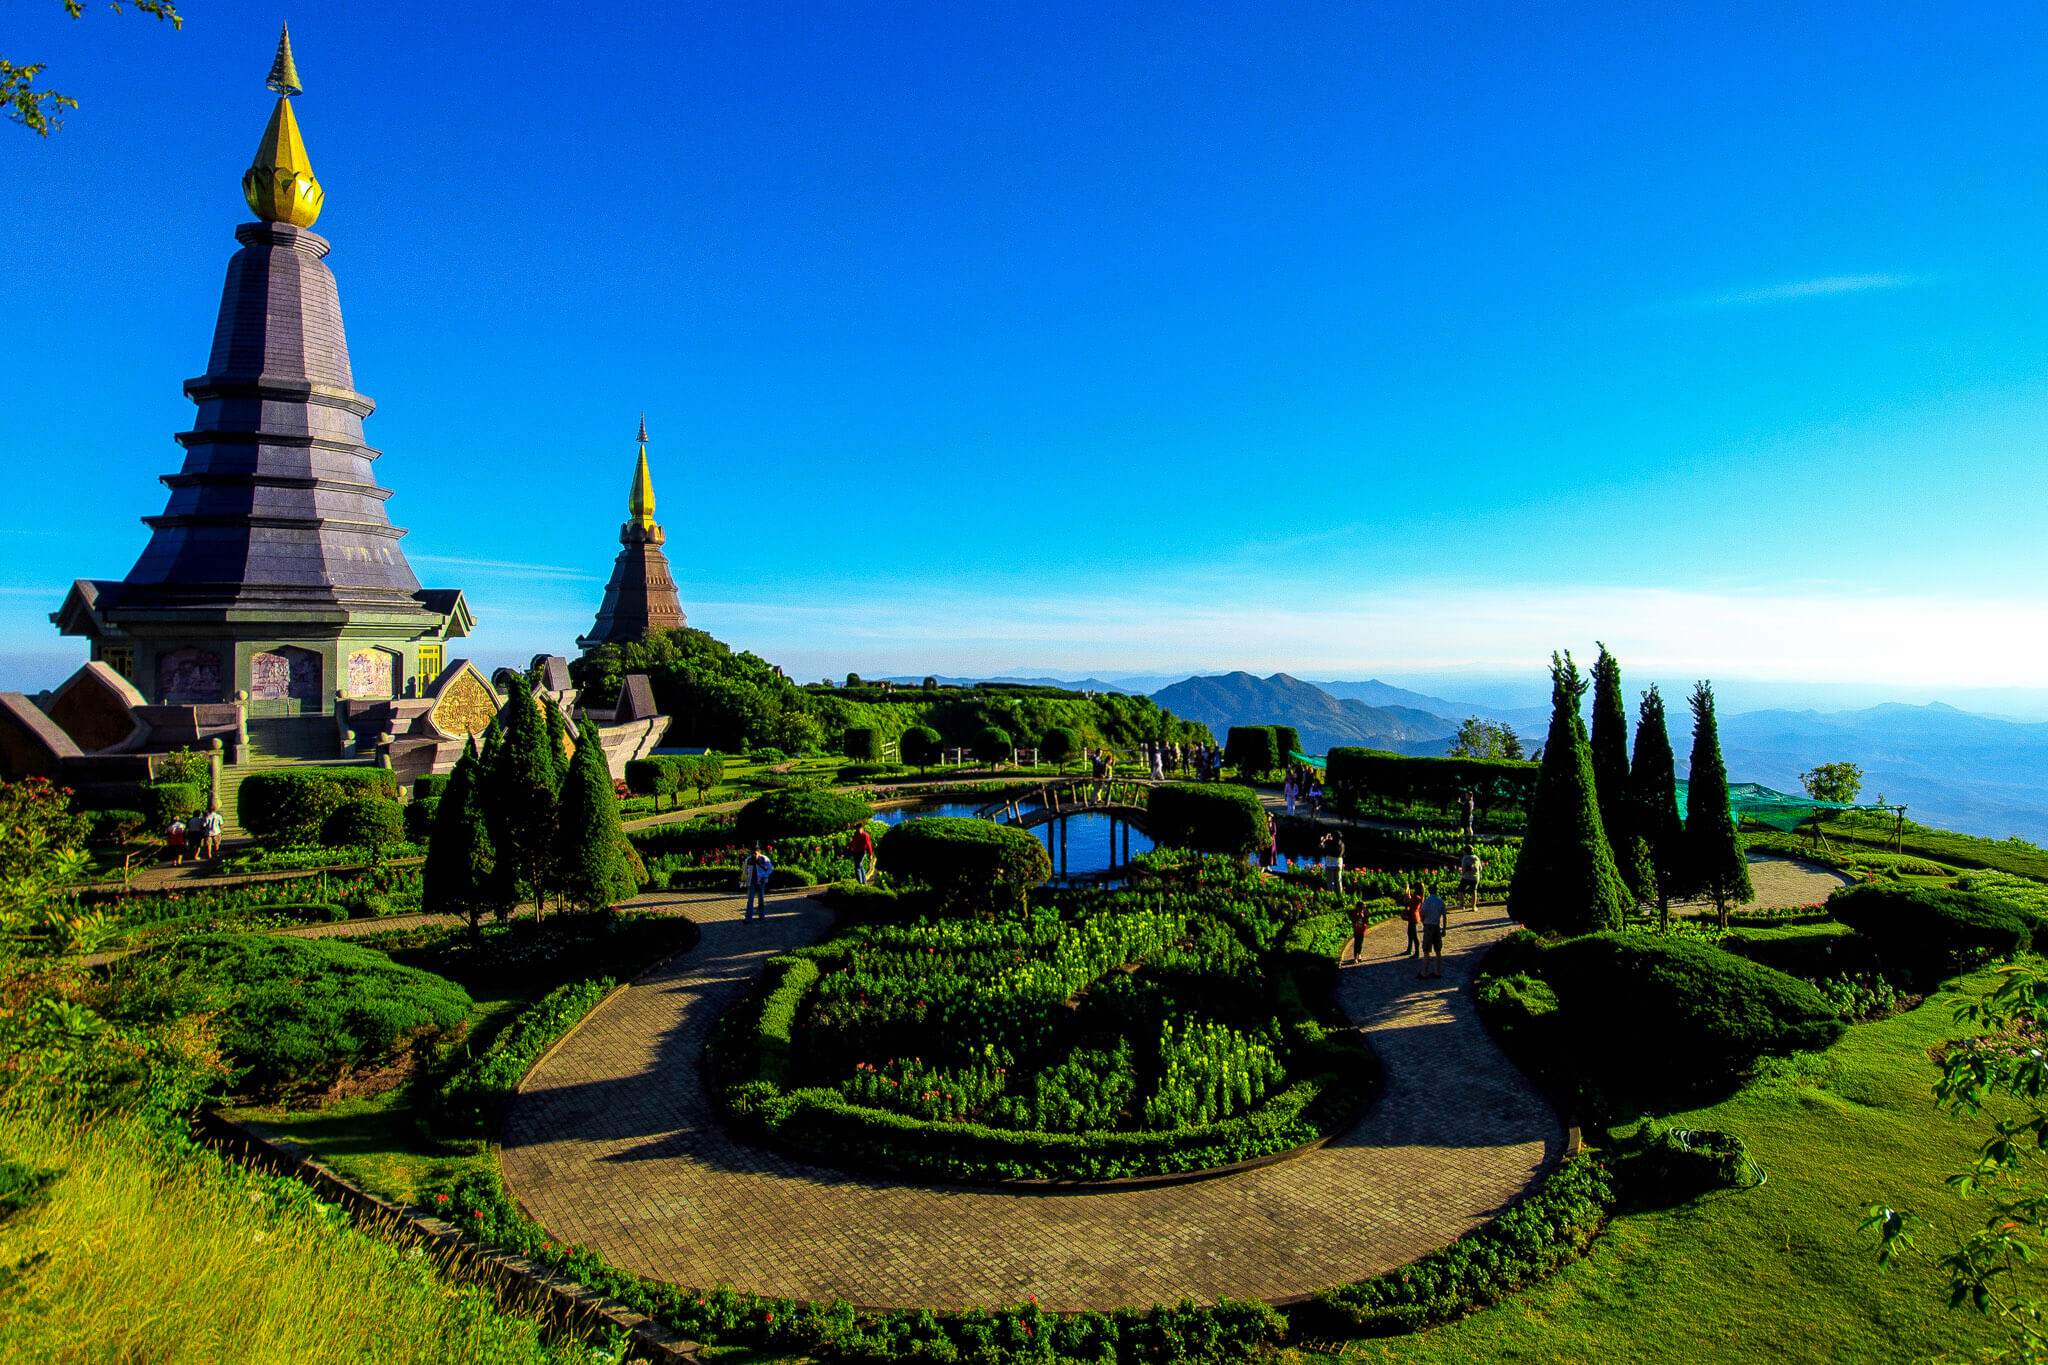 The King and Queen chedis at Doi Inthanon